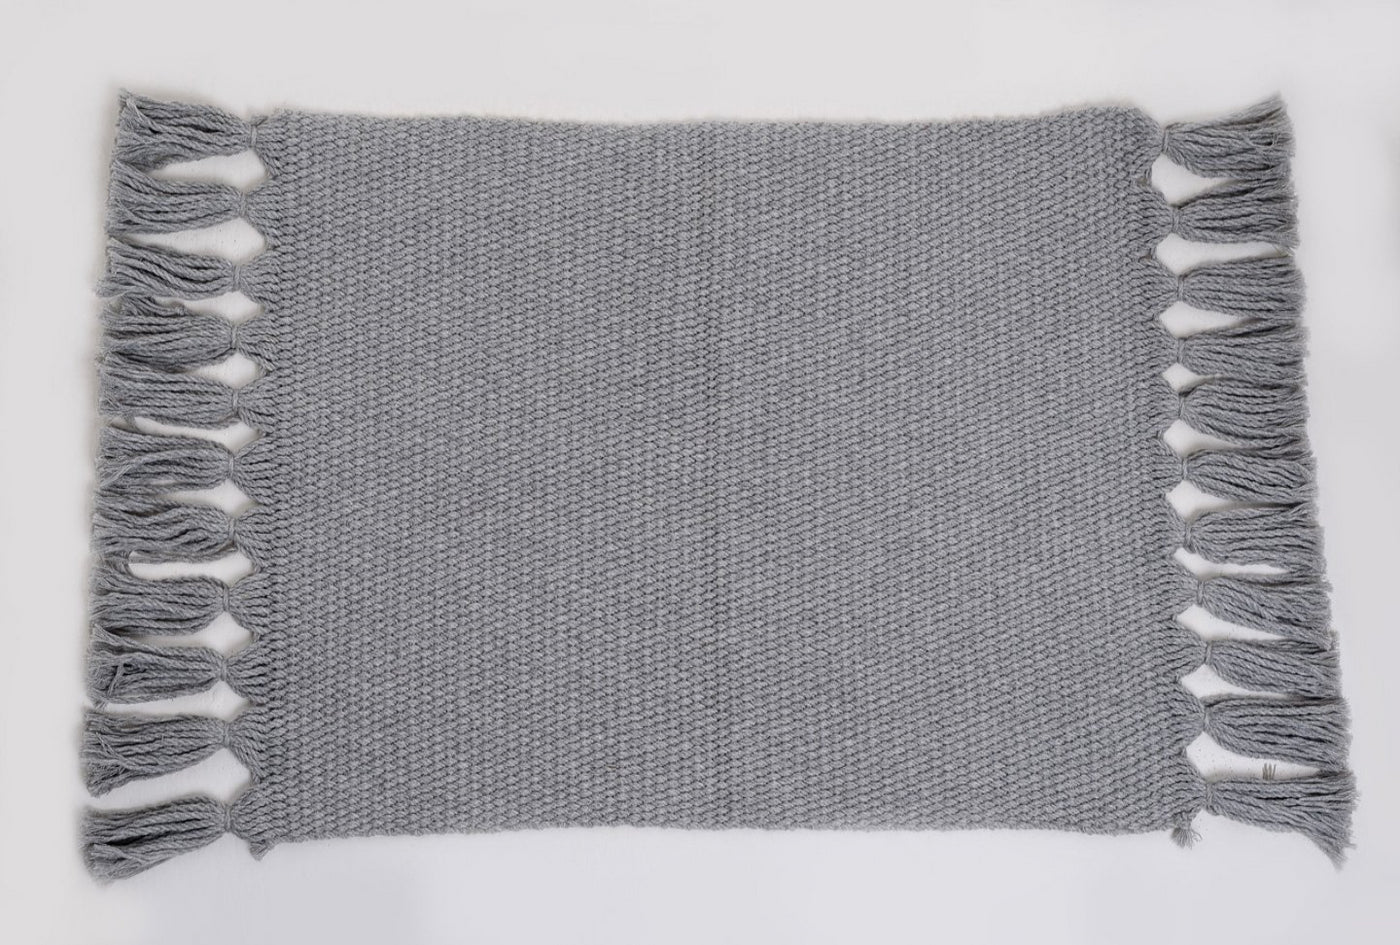 Gray Handmade Cotton Placemats Set of 6 Formal Casual Decor